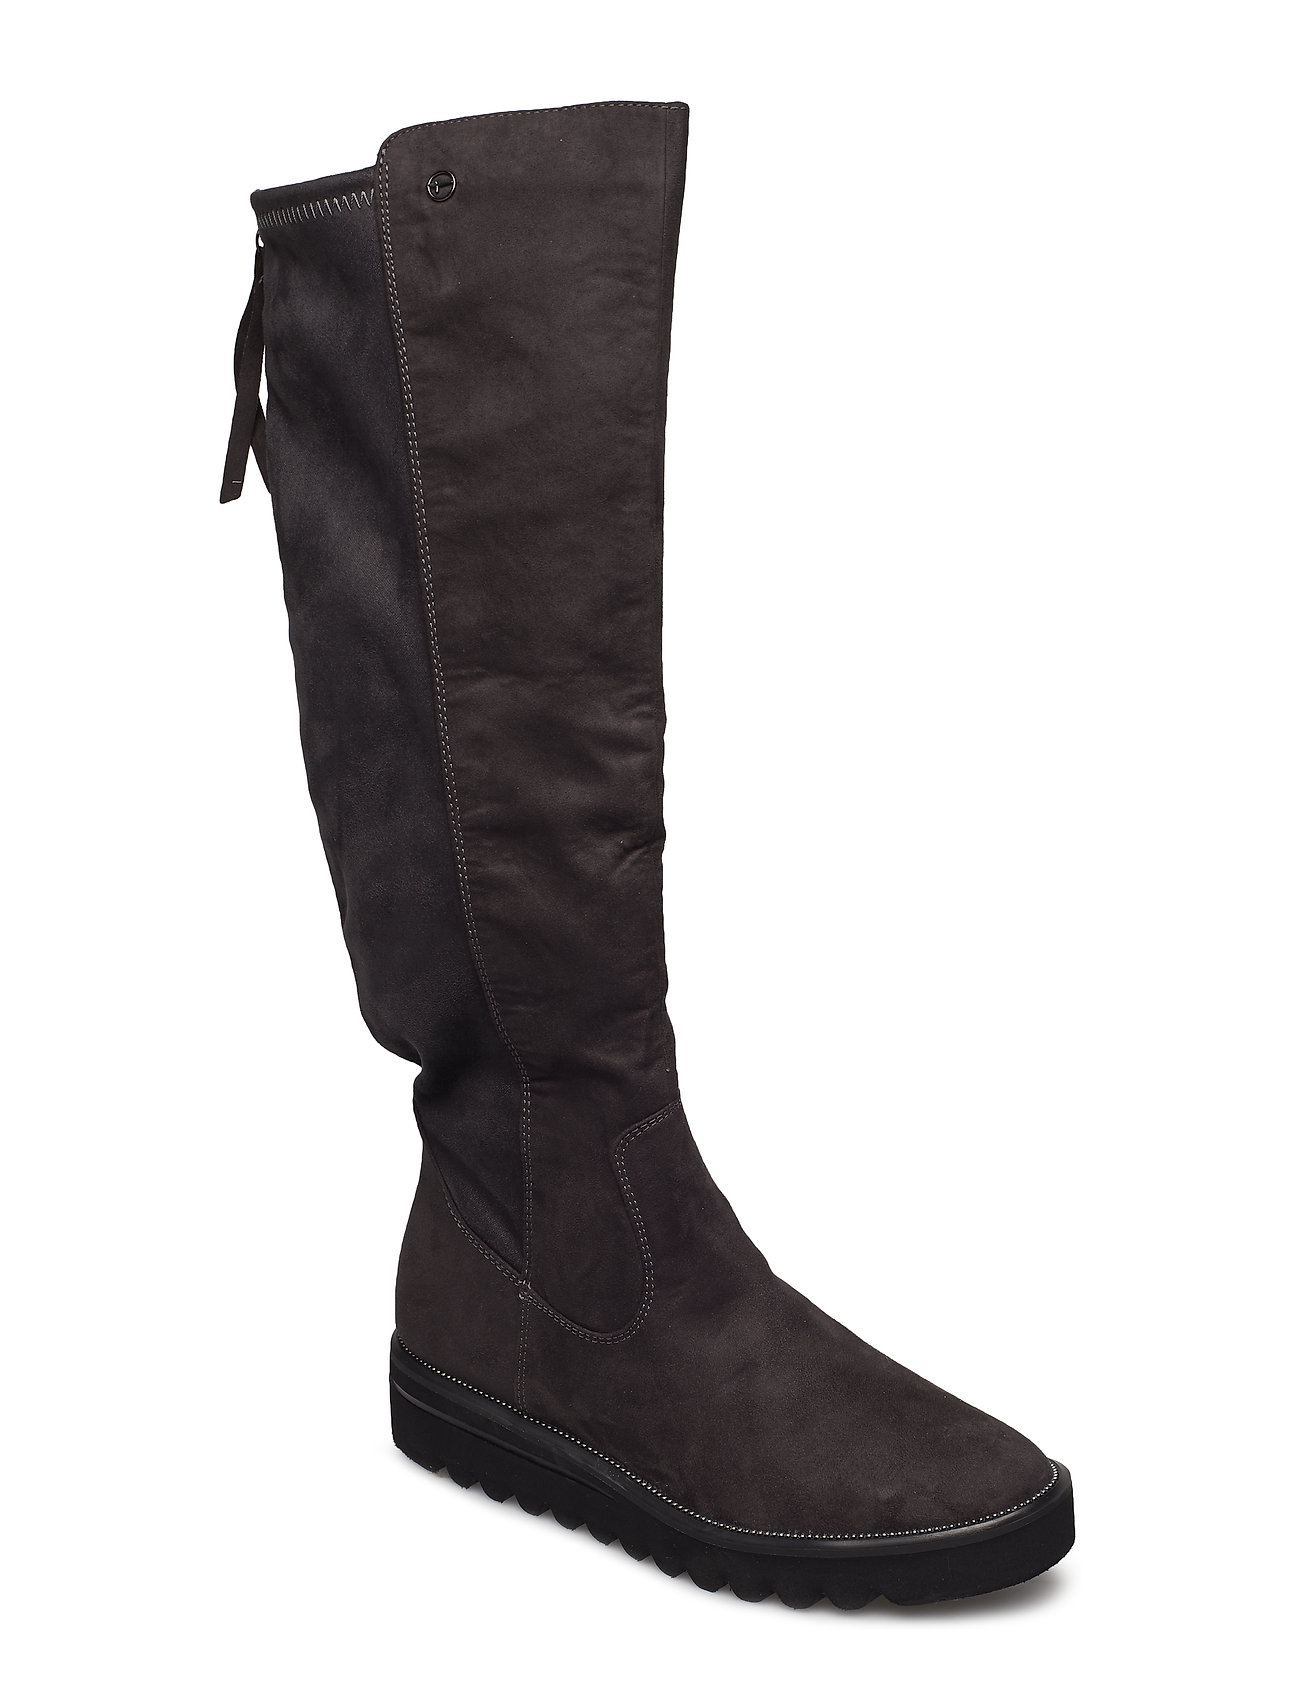 Tamaris Woms Boots - ANTHRACITE